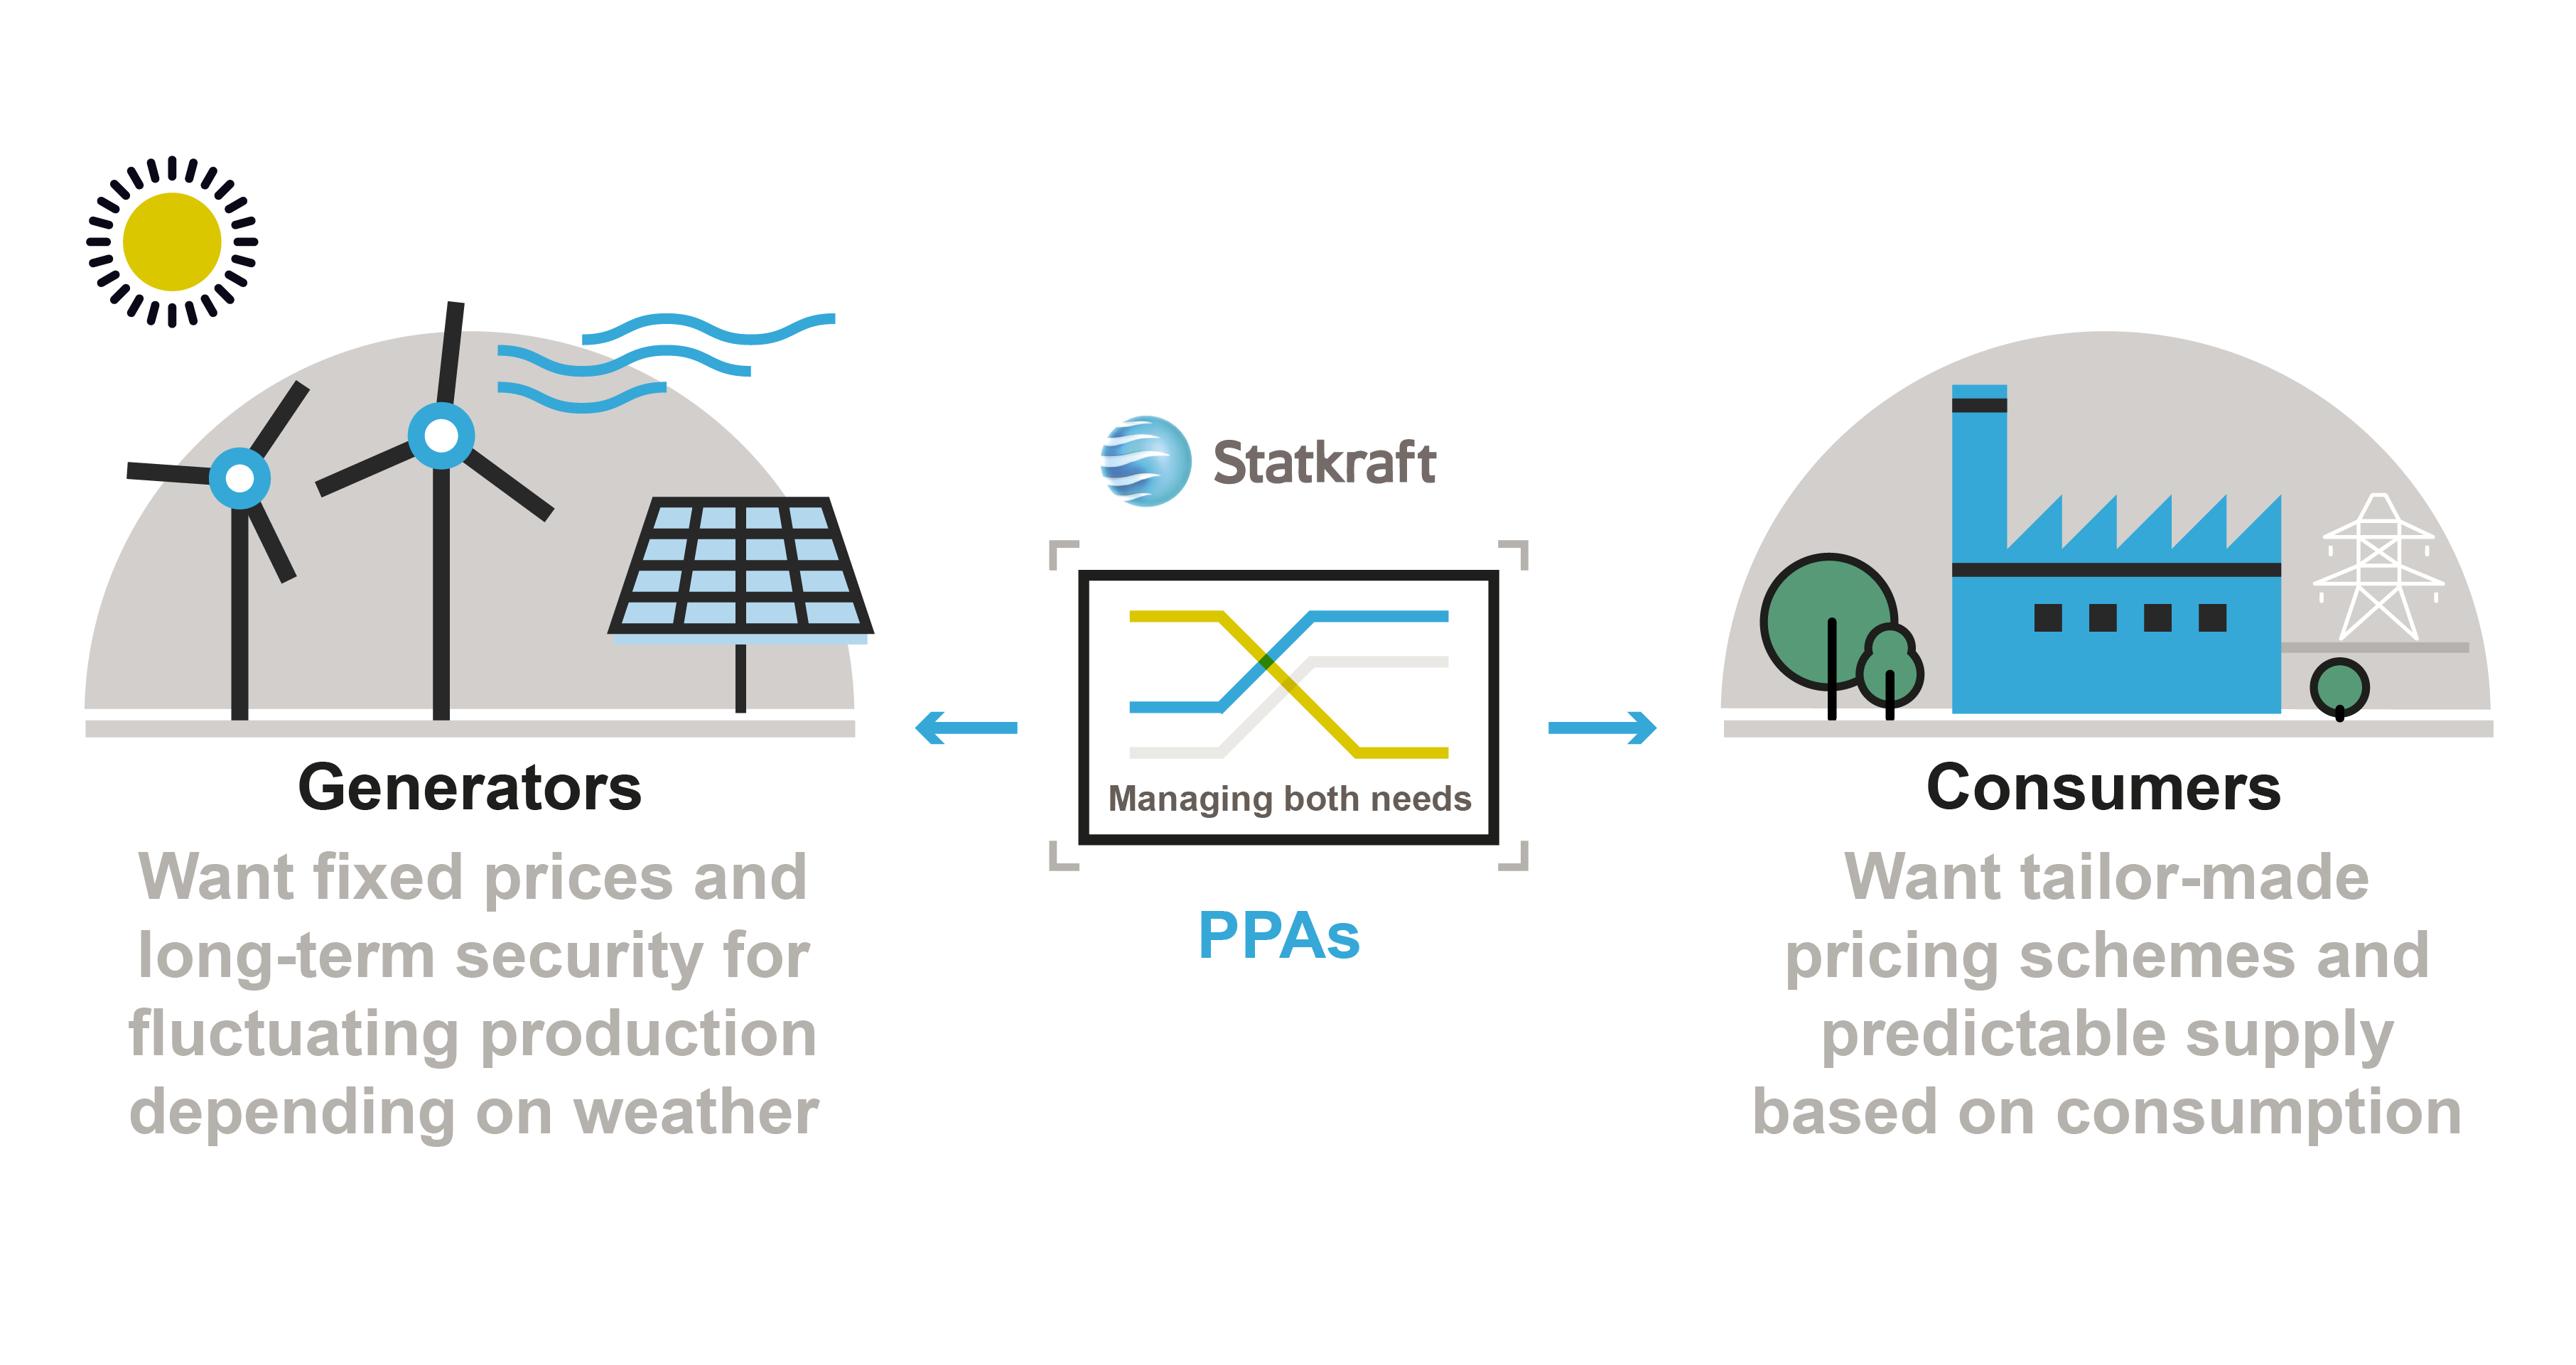 Info graphics about PPAs